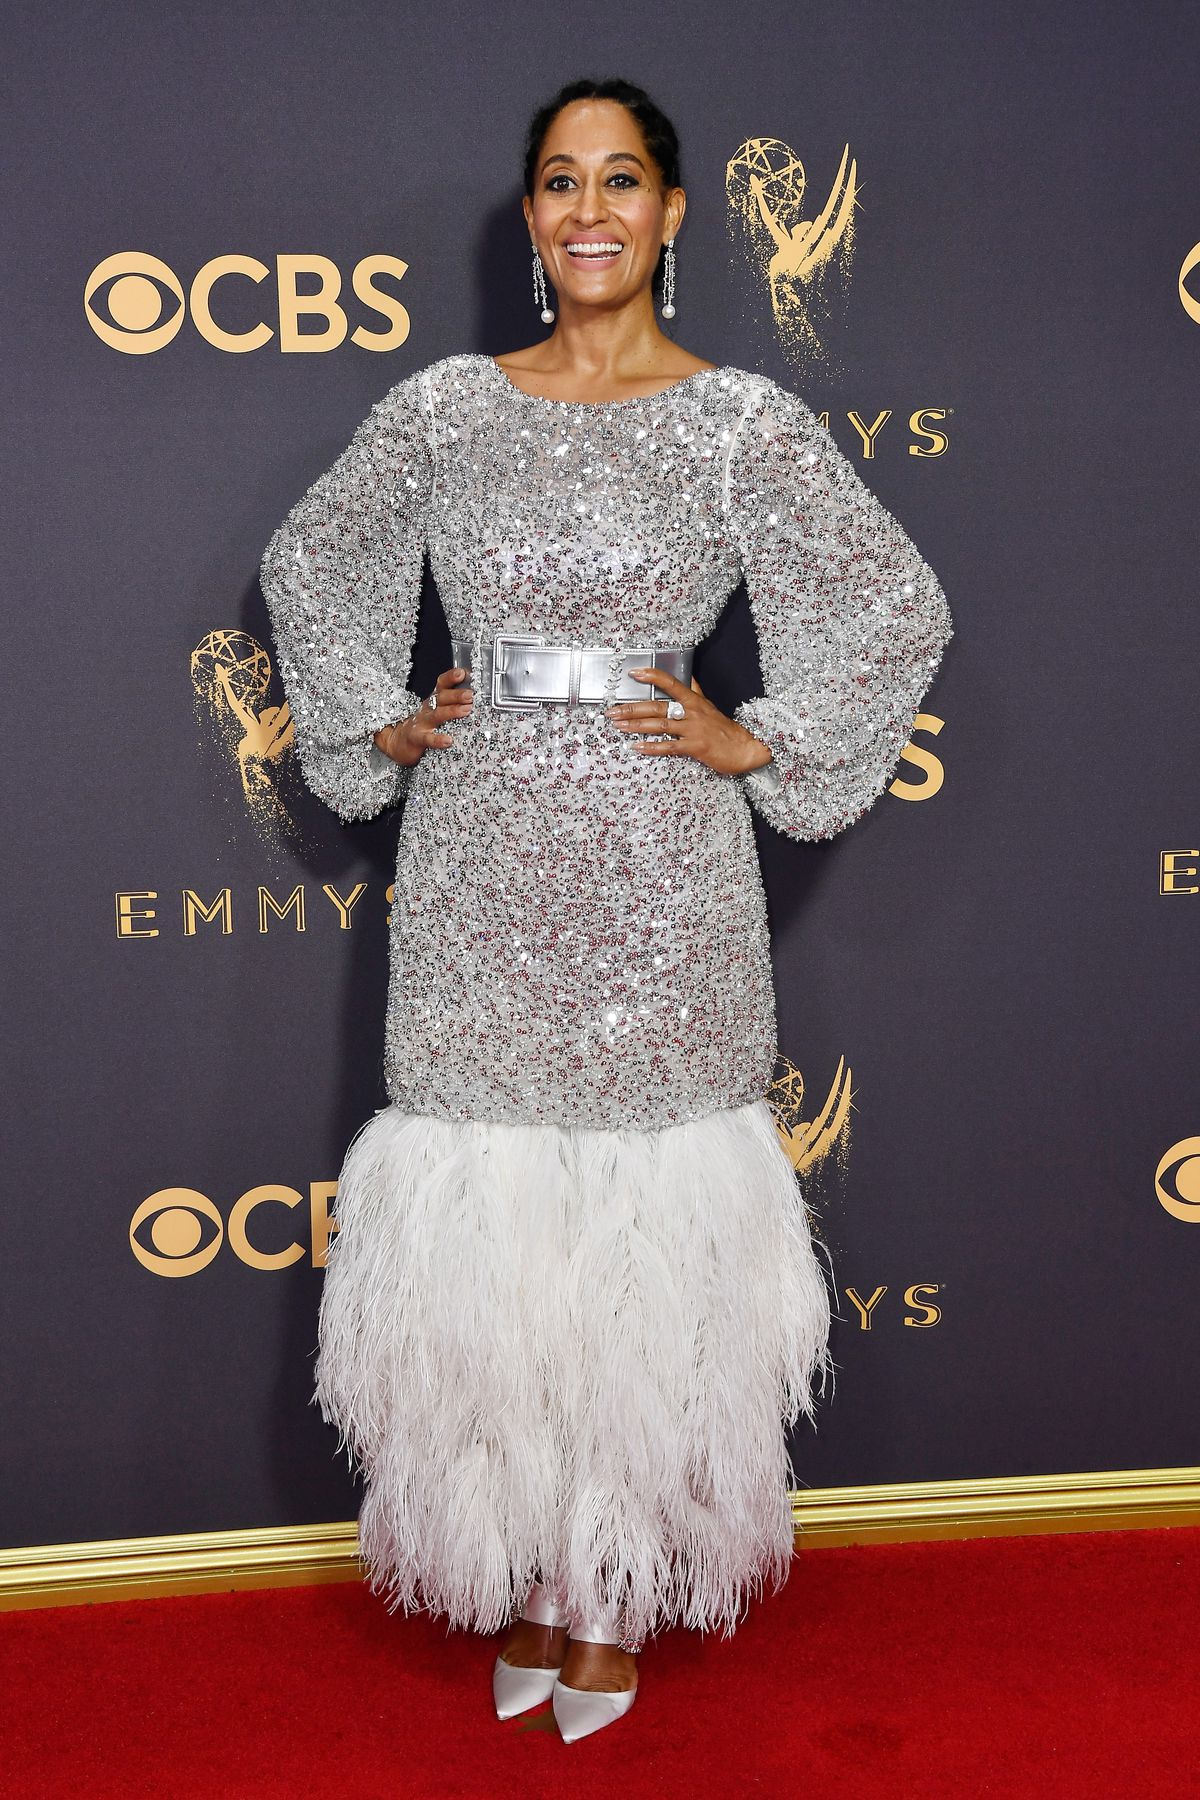 Tracee Ellis Ross in Chanel Haute Couture at the 2017 Emmys.